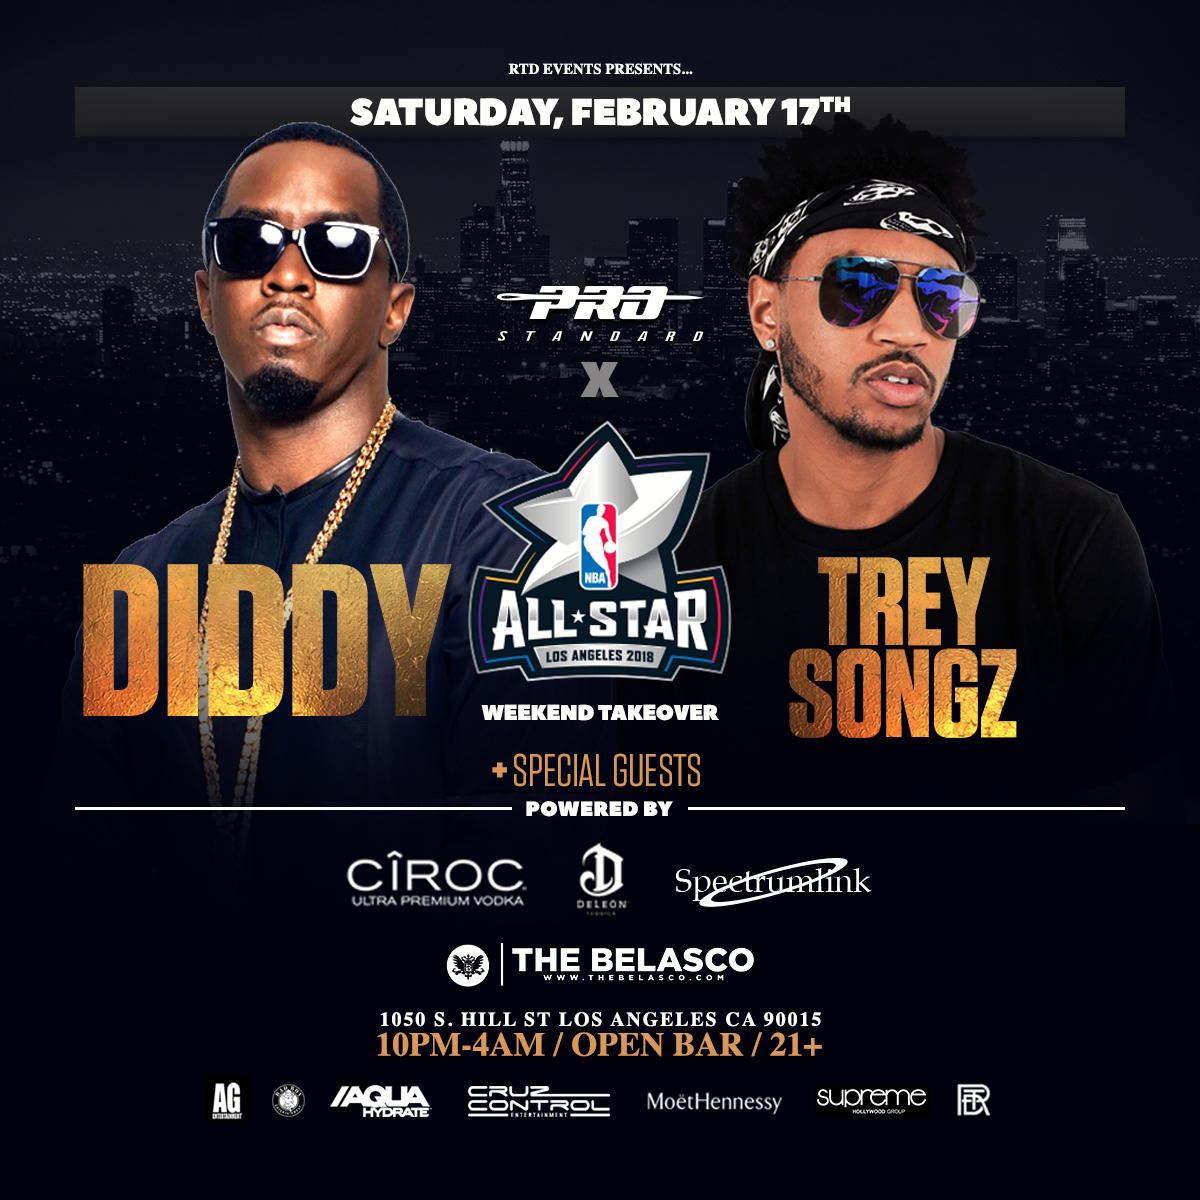 Diddy Trey Songz Nba All Star Weekend Takeover Tickets 021718